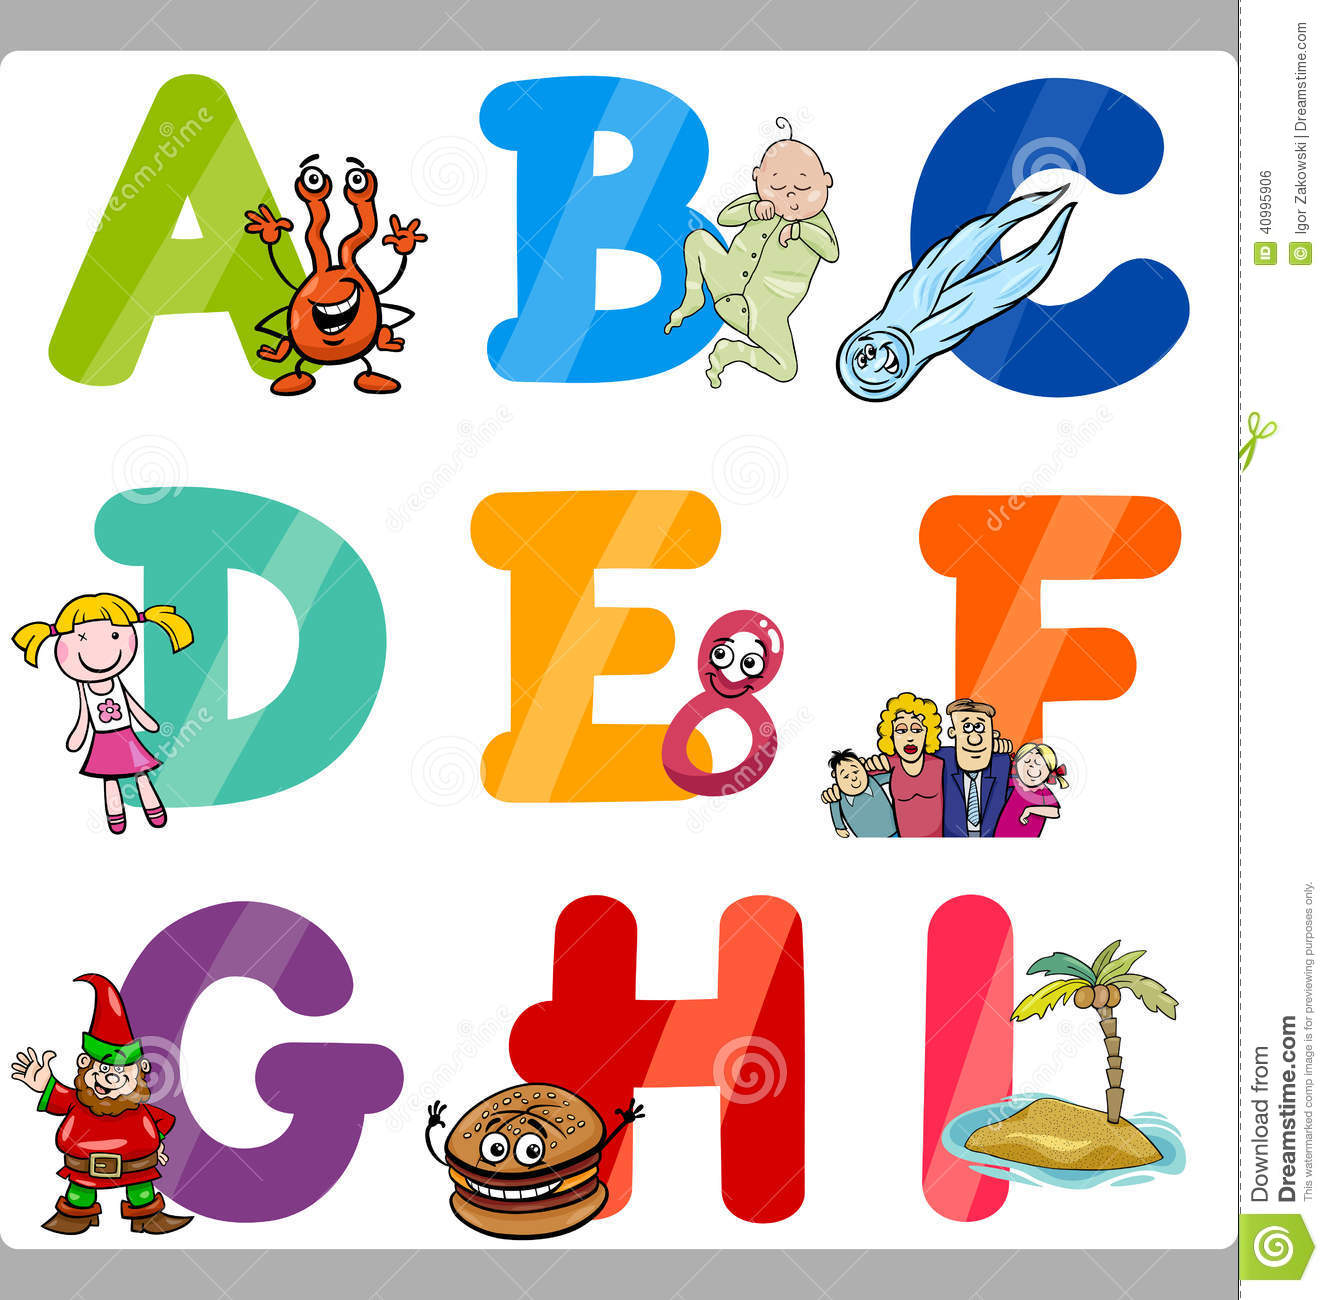 Letters for kids clipart clip art free library Education Cartoon Alphabet Letters For Kids Stock Vector - Image ... clip art free library